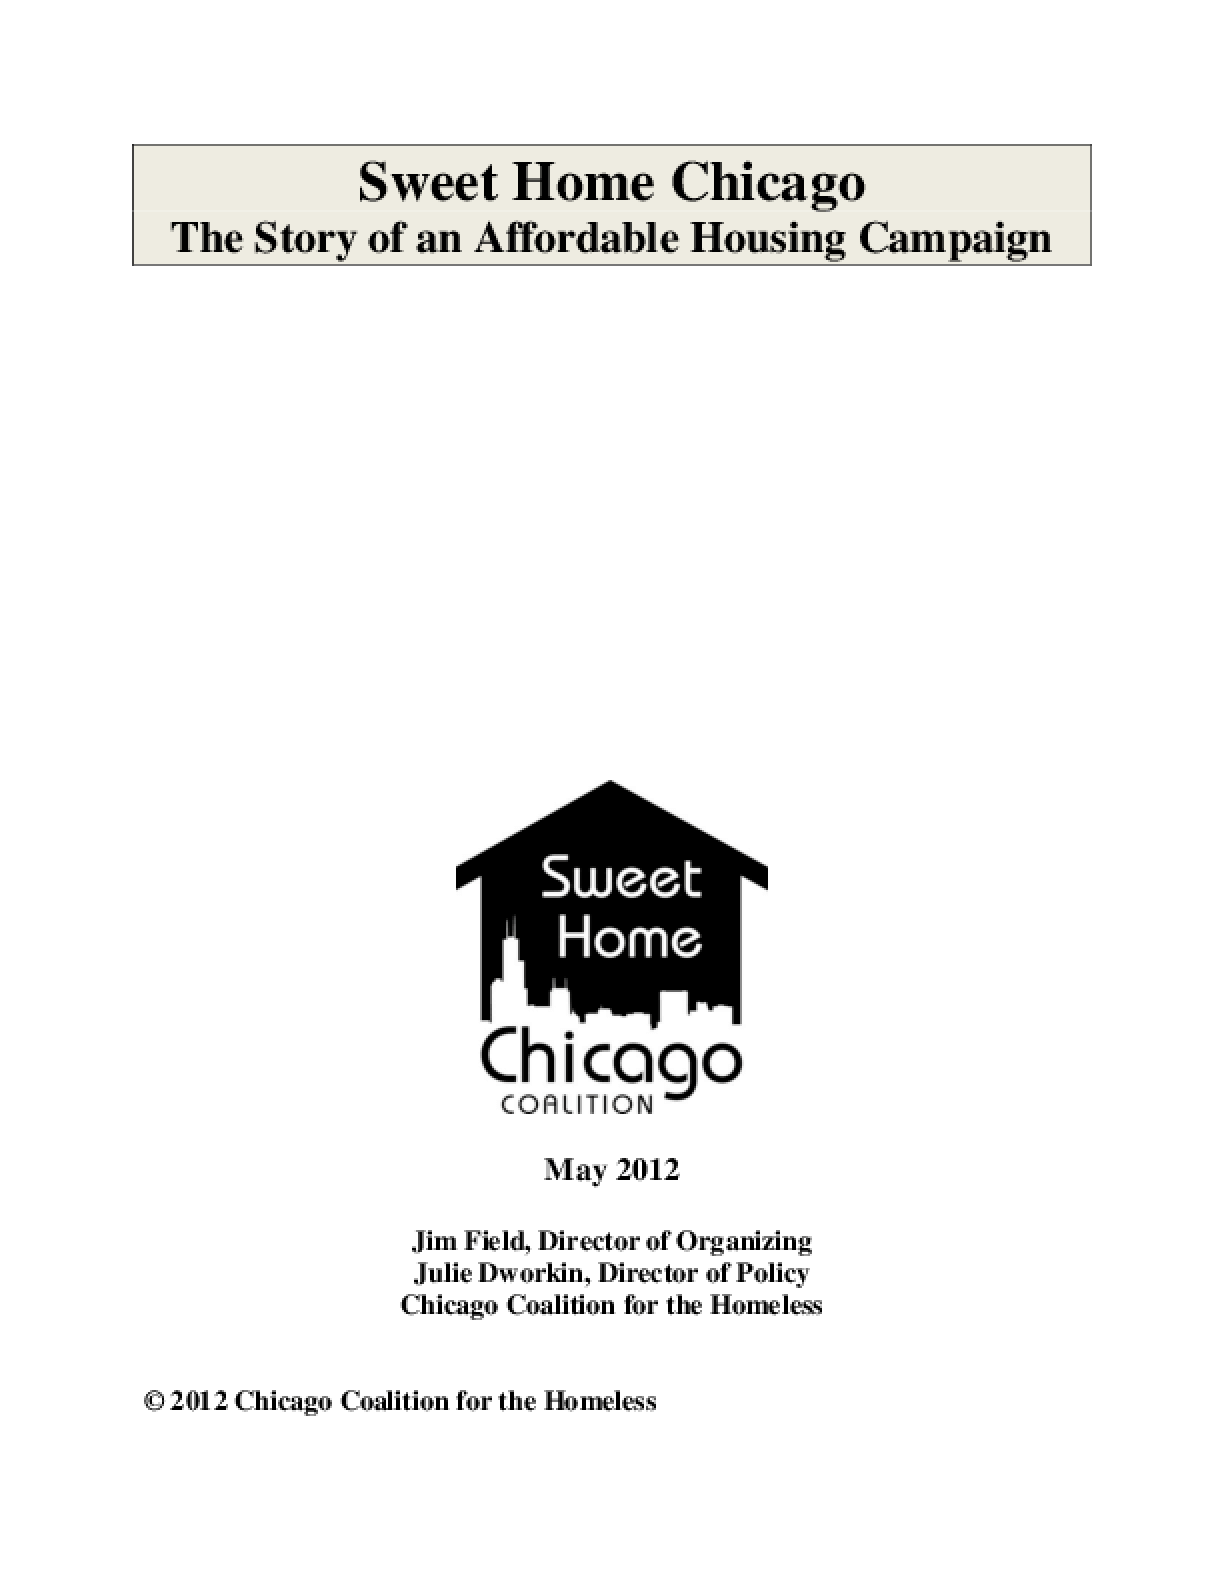 Sweet Home Chicago: The Story of an Affordable Housing Campaign